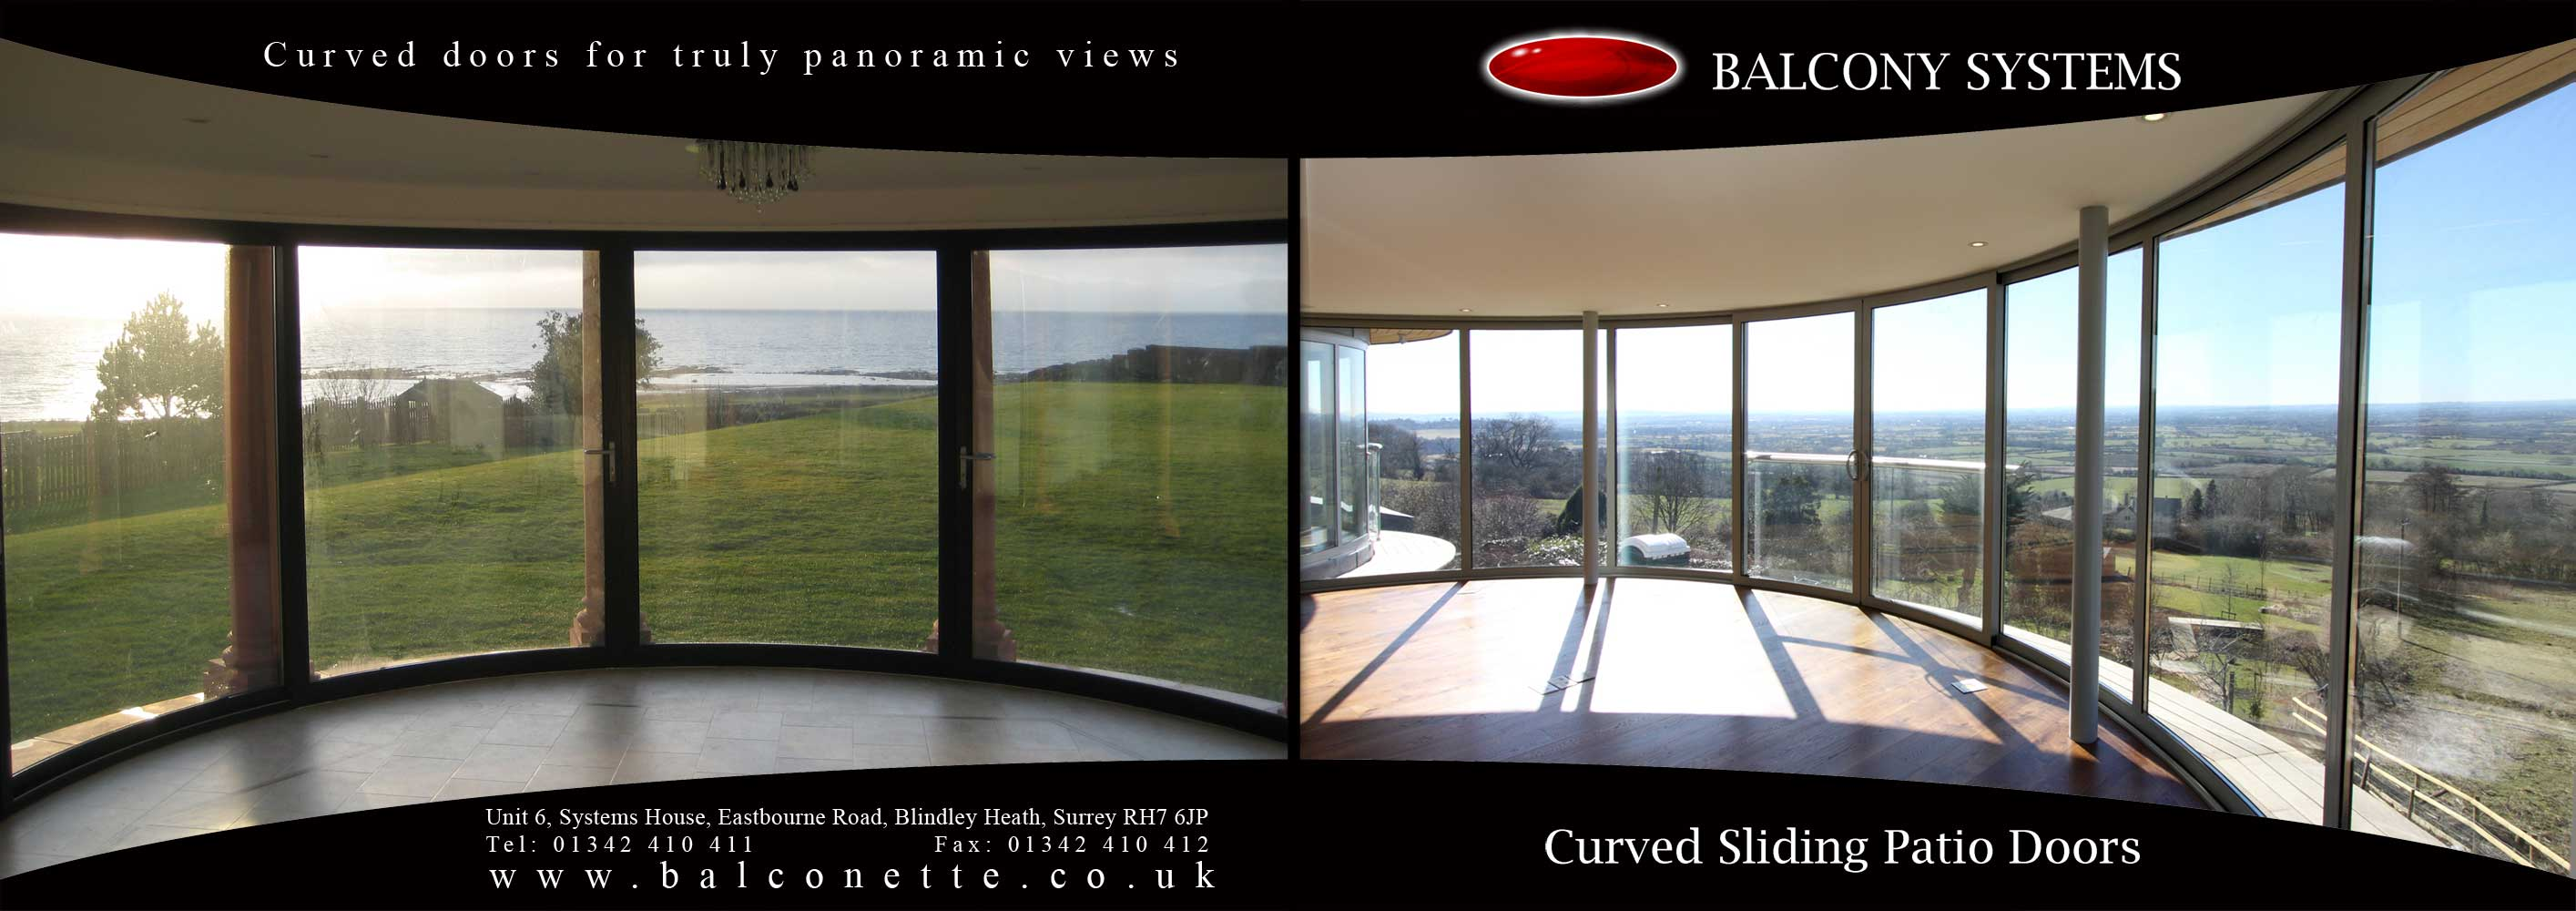 Curved Sliding Glass Patio Door Complements Listed Building